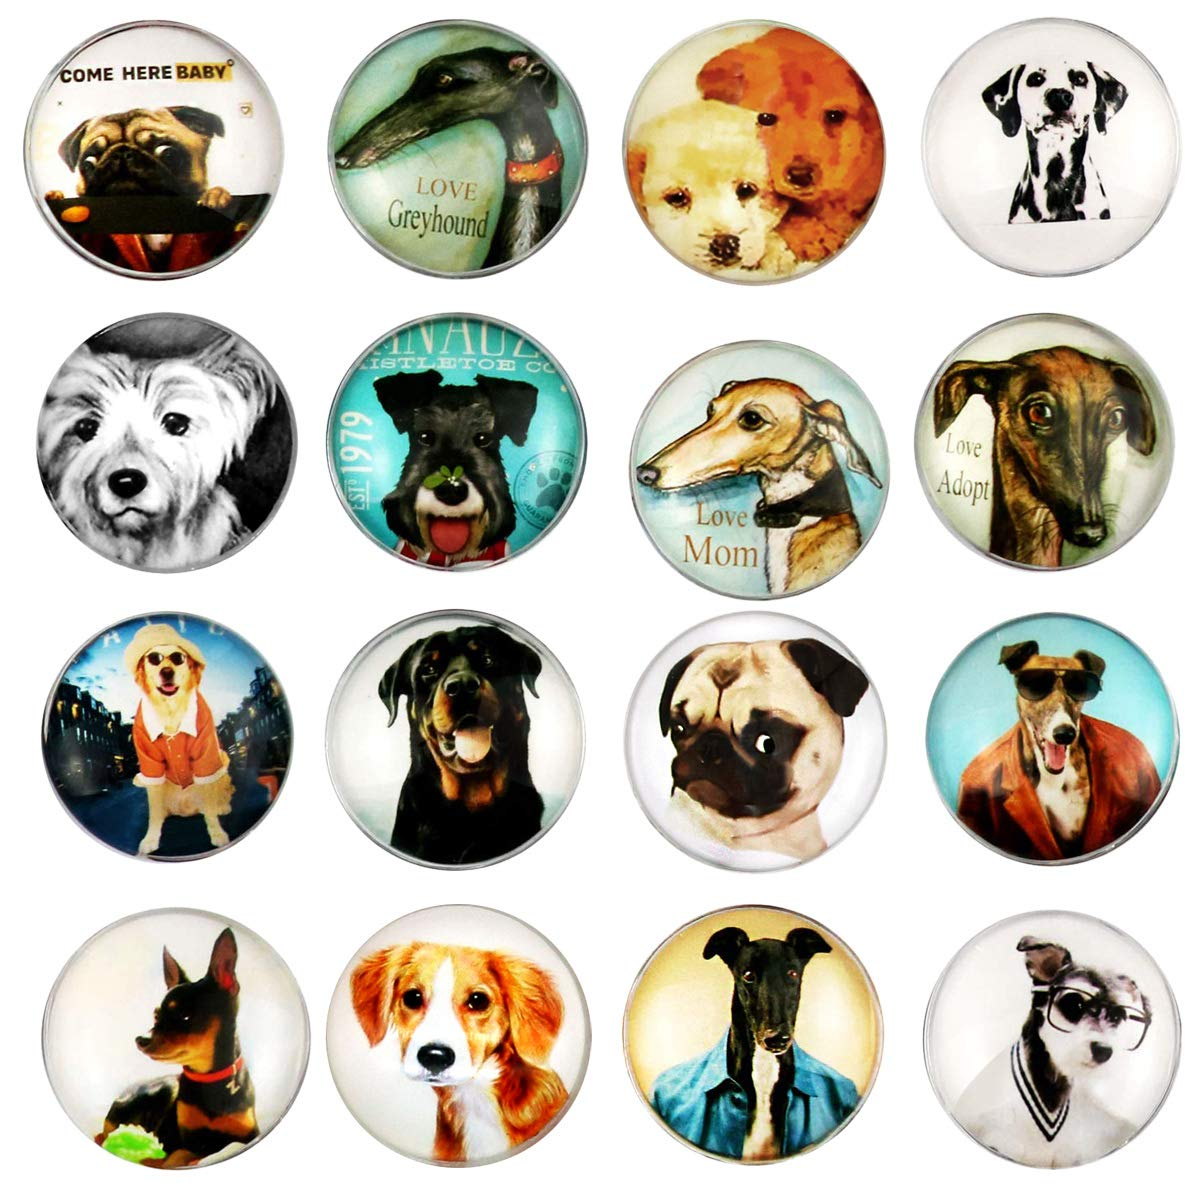 Pack-16 Cute Dog Refrigerator Magnets, Pretty Glass Fridge Magnets for Office Cabinet Whiteboard Photo, Cosylove Magnets for Home Decor